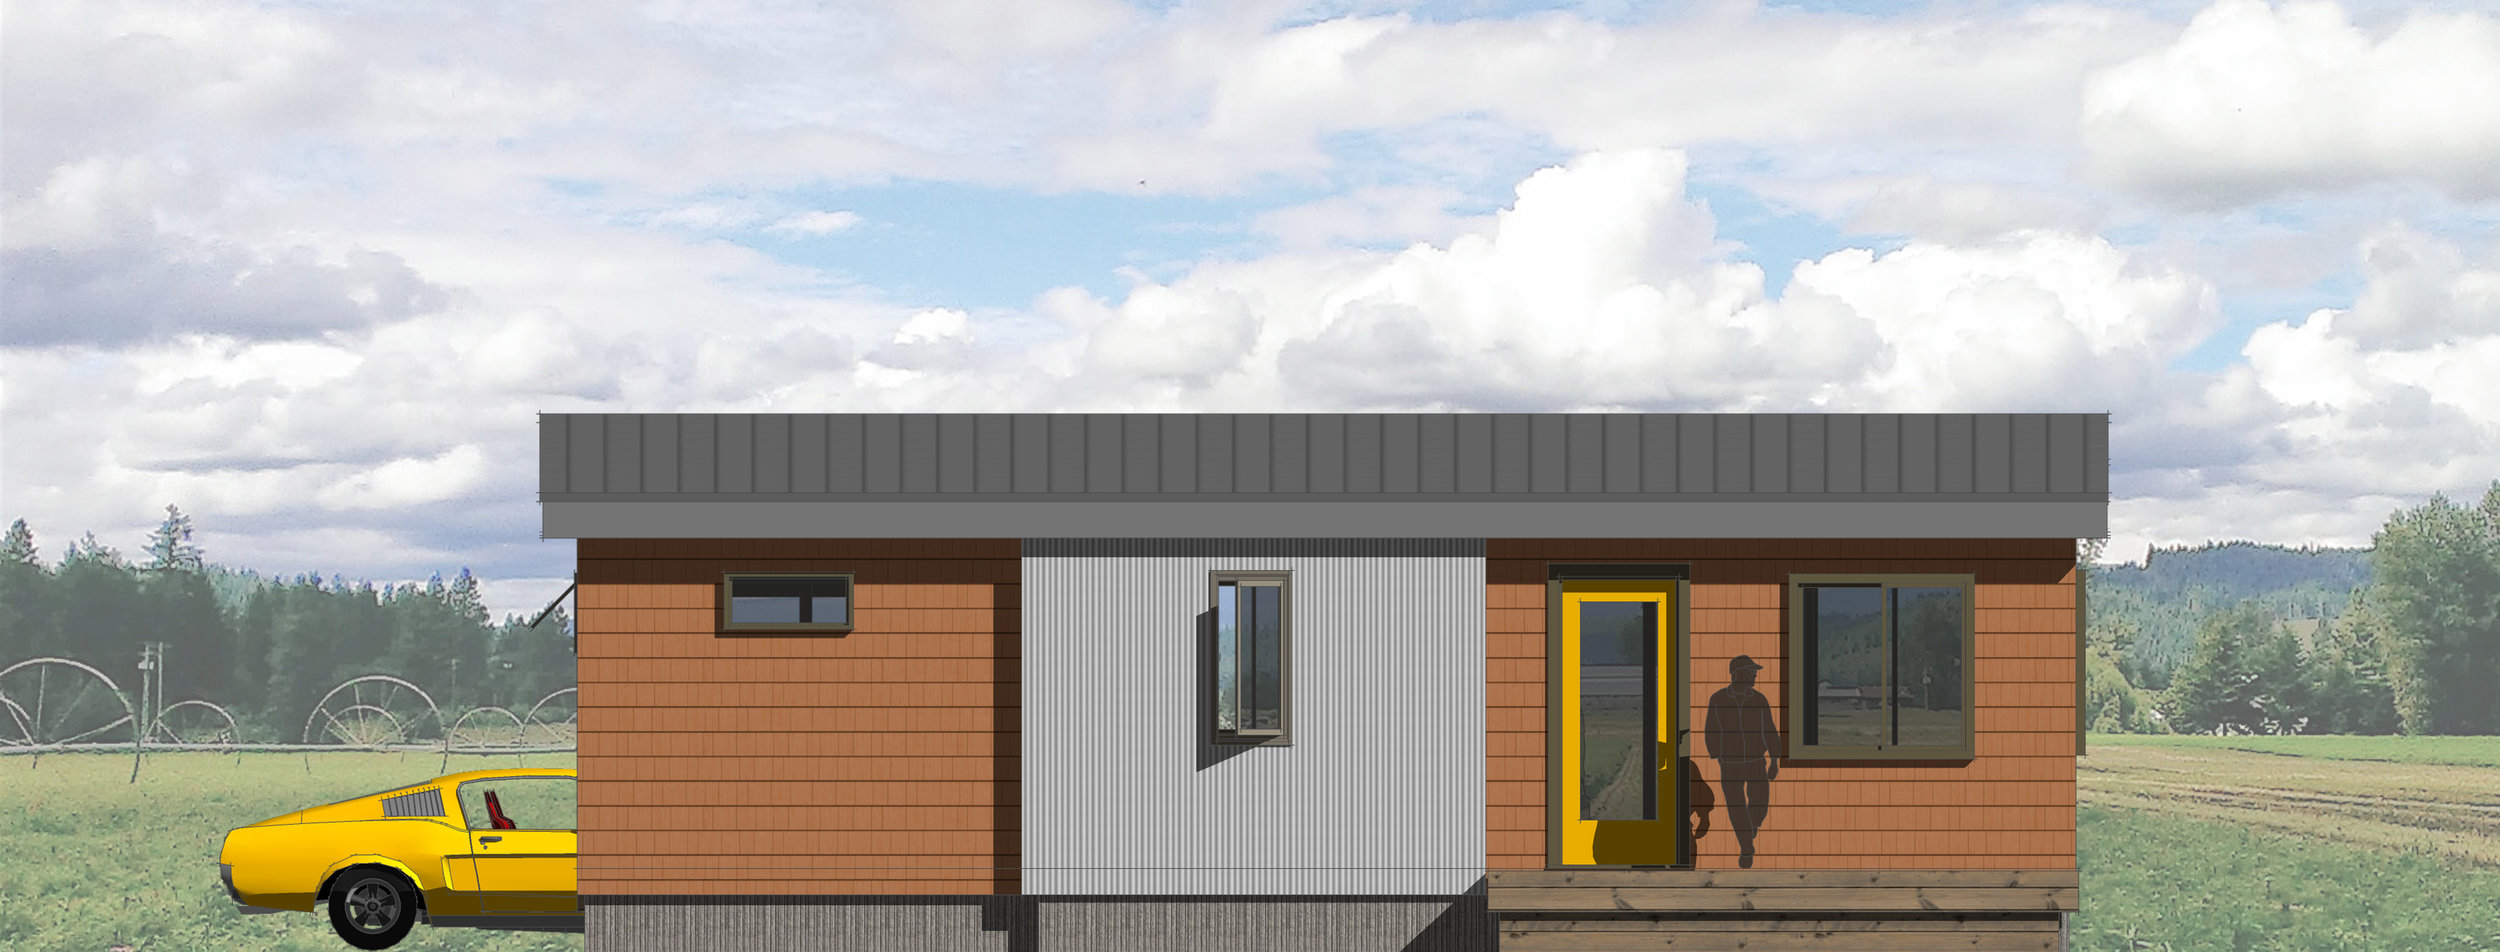 Ideabox_Elevations_nw 2.jpg